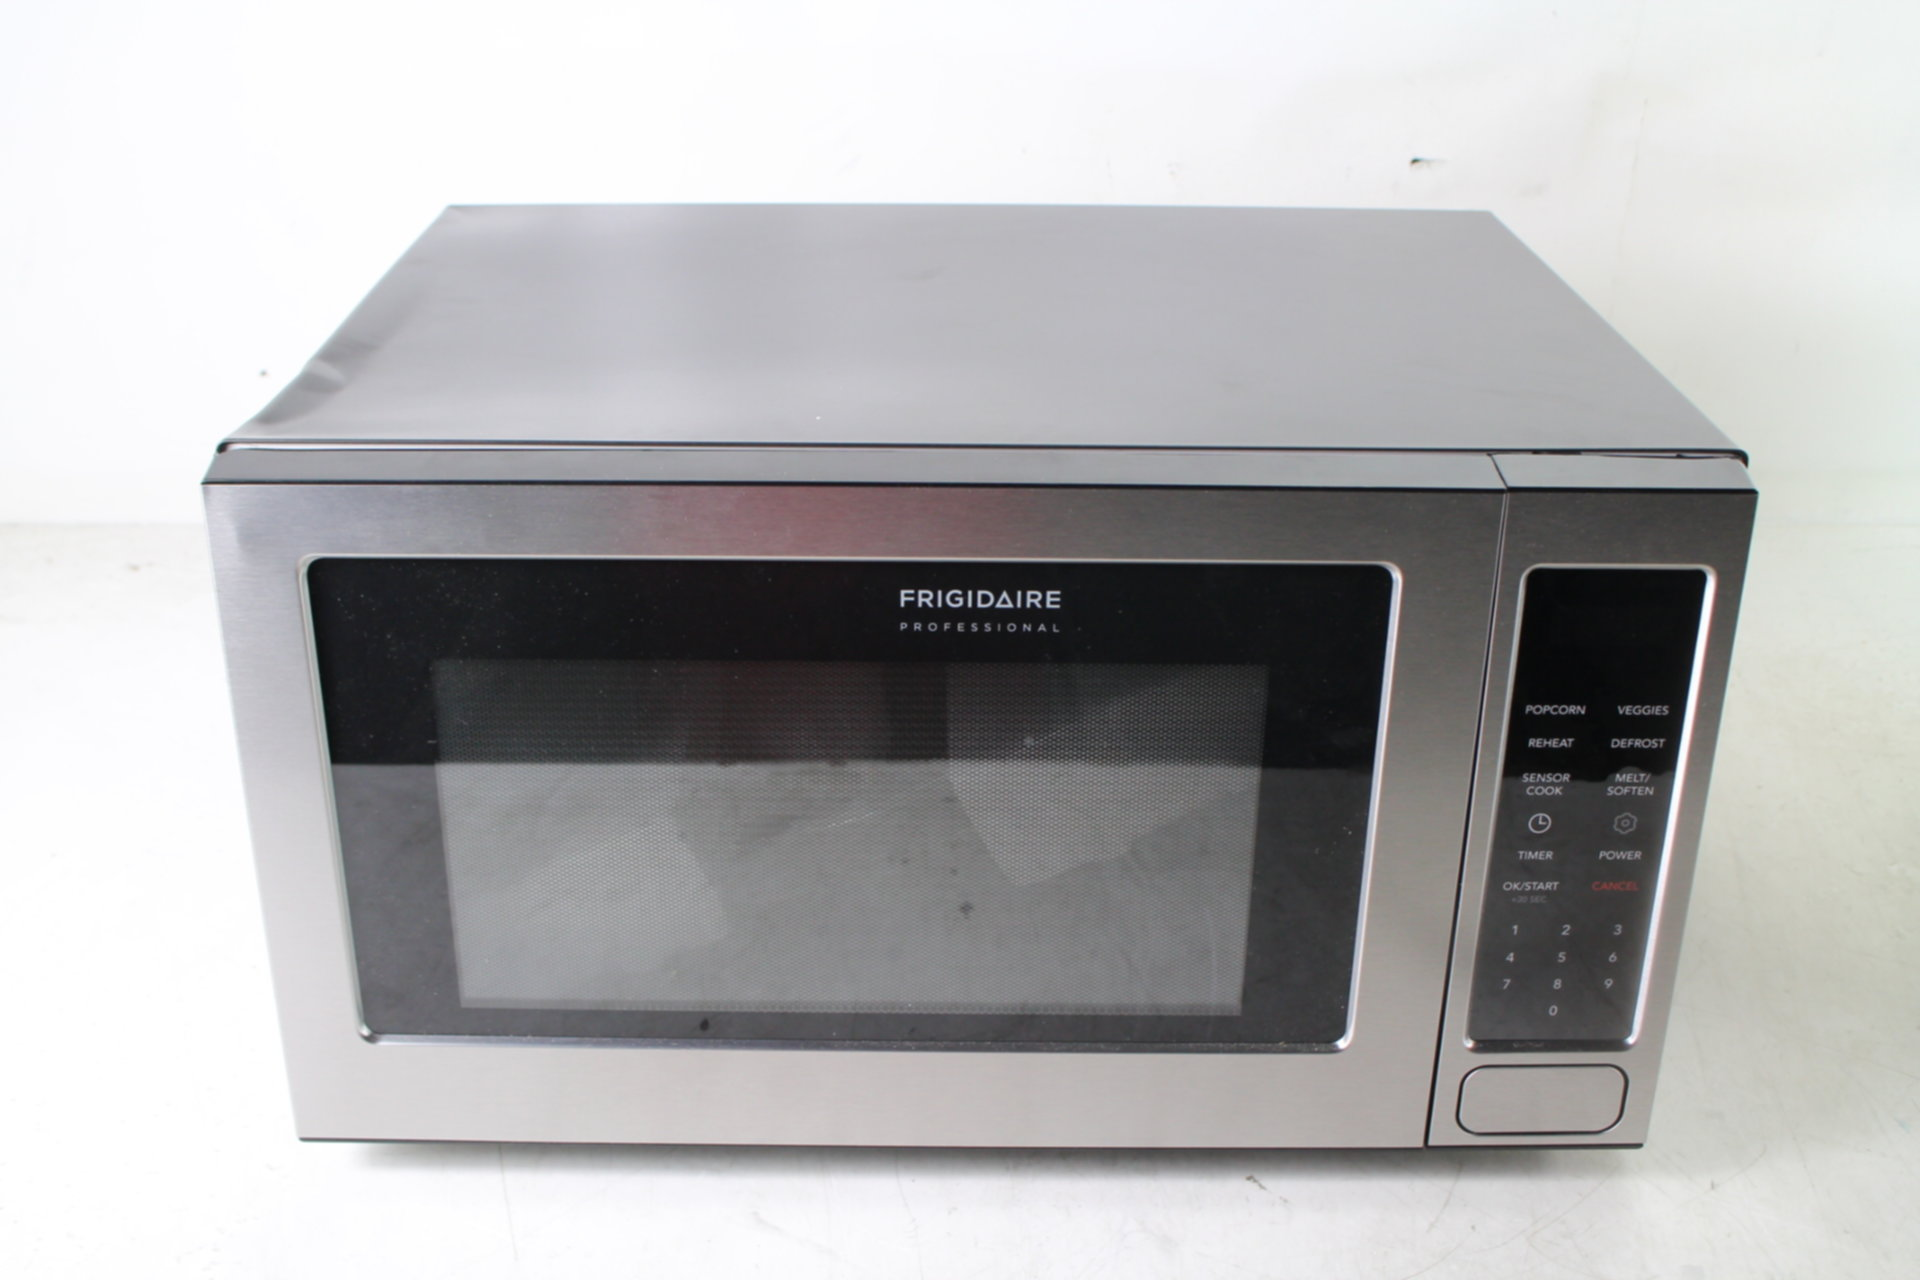 fpmo209rf frigidaire professional builtin microwave 1200w smudge proof stainless ebay. Black Bedroom Furniture Sets. Home Design Ideas